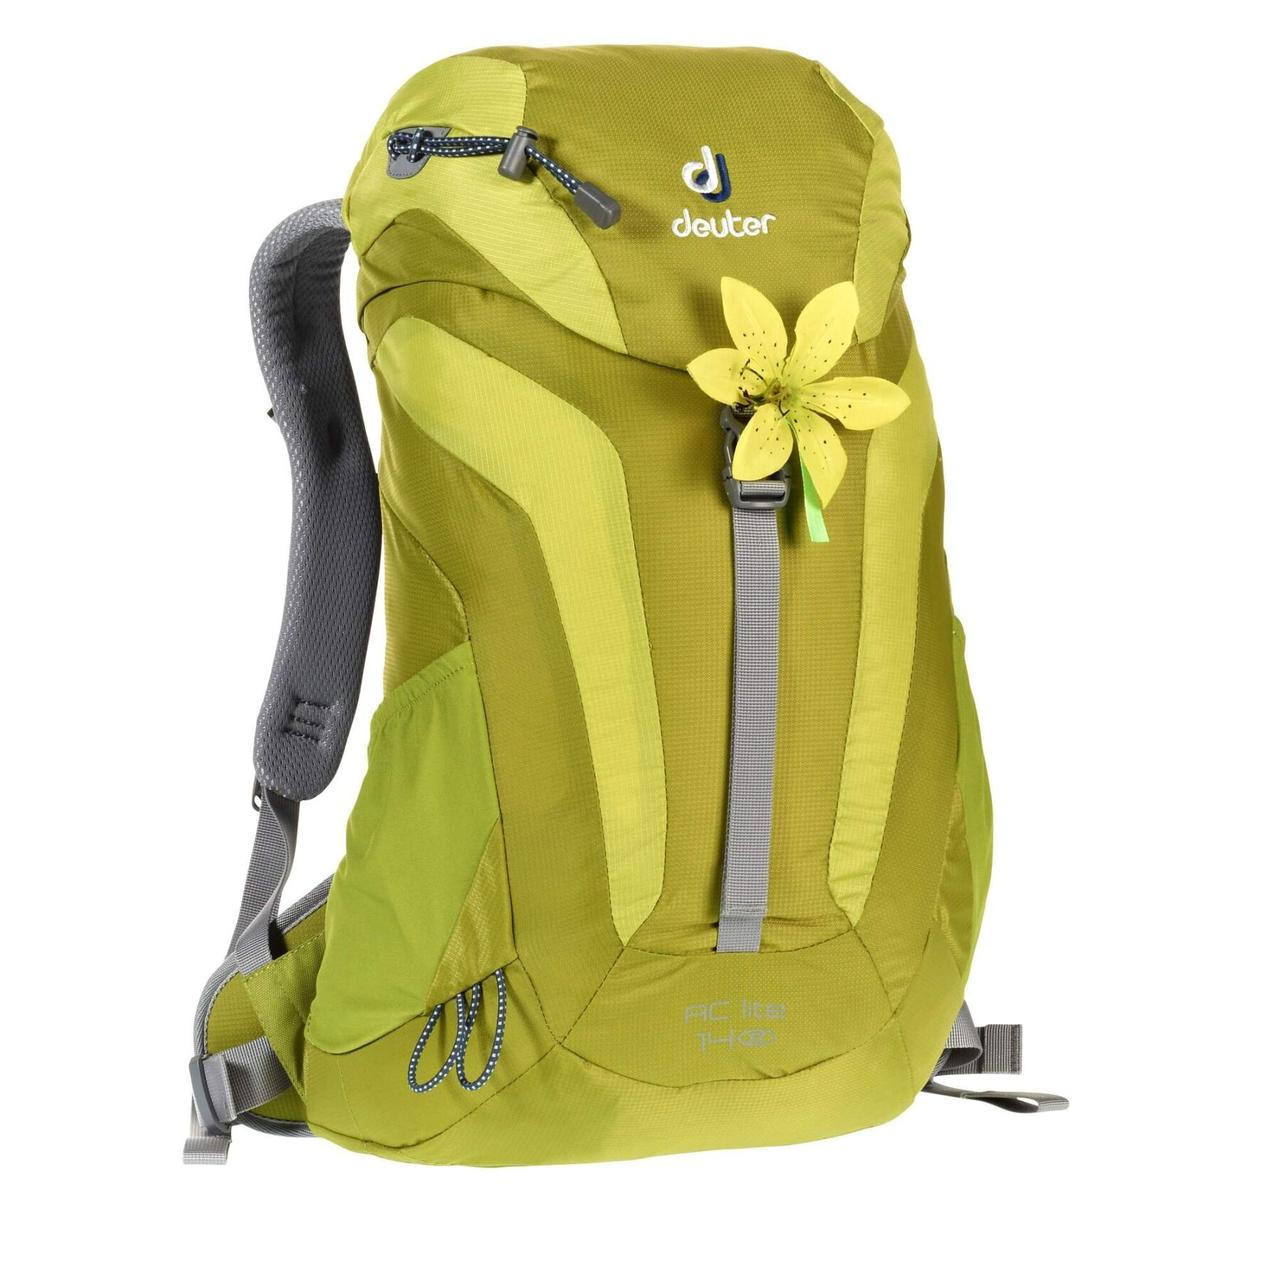 Рюкзак Deuter AC Lite 14 SL moss-apple (3420016 2223)